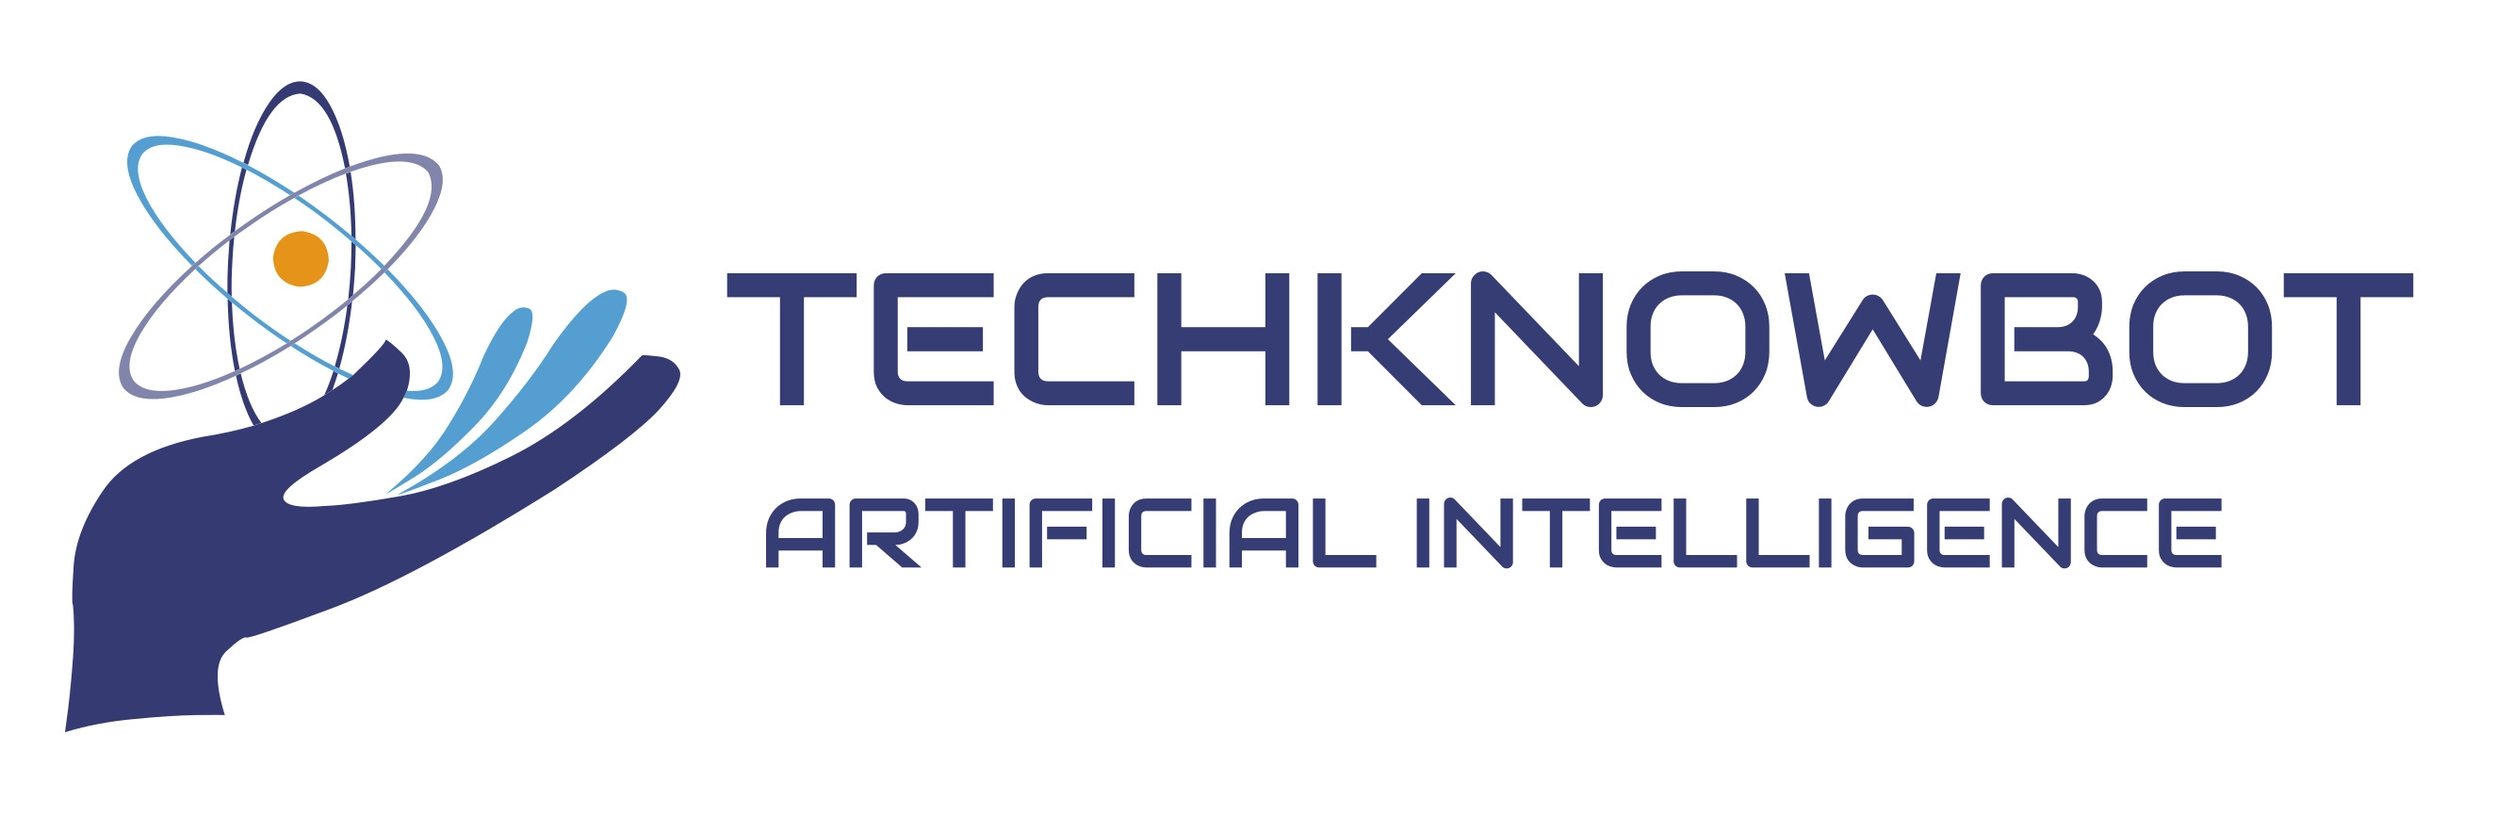 TechknowBot